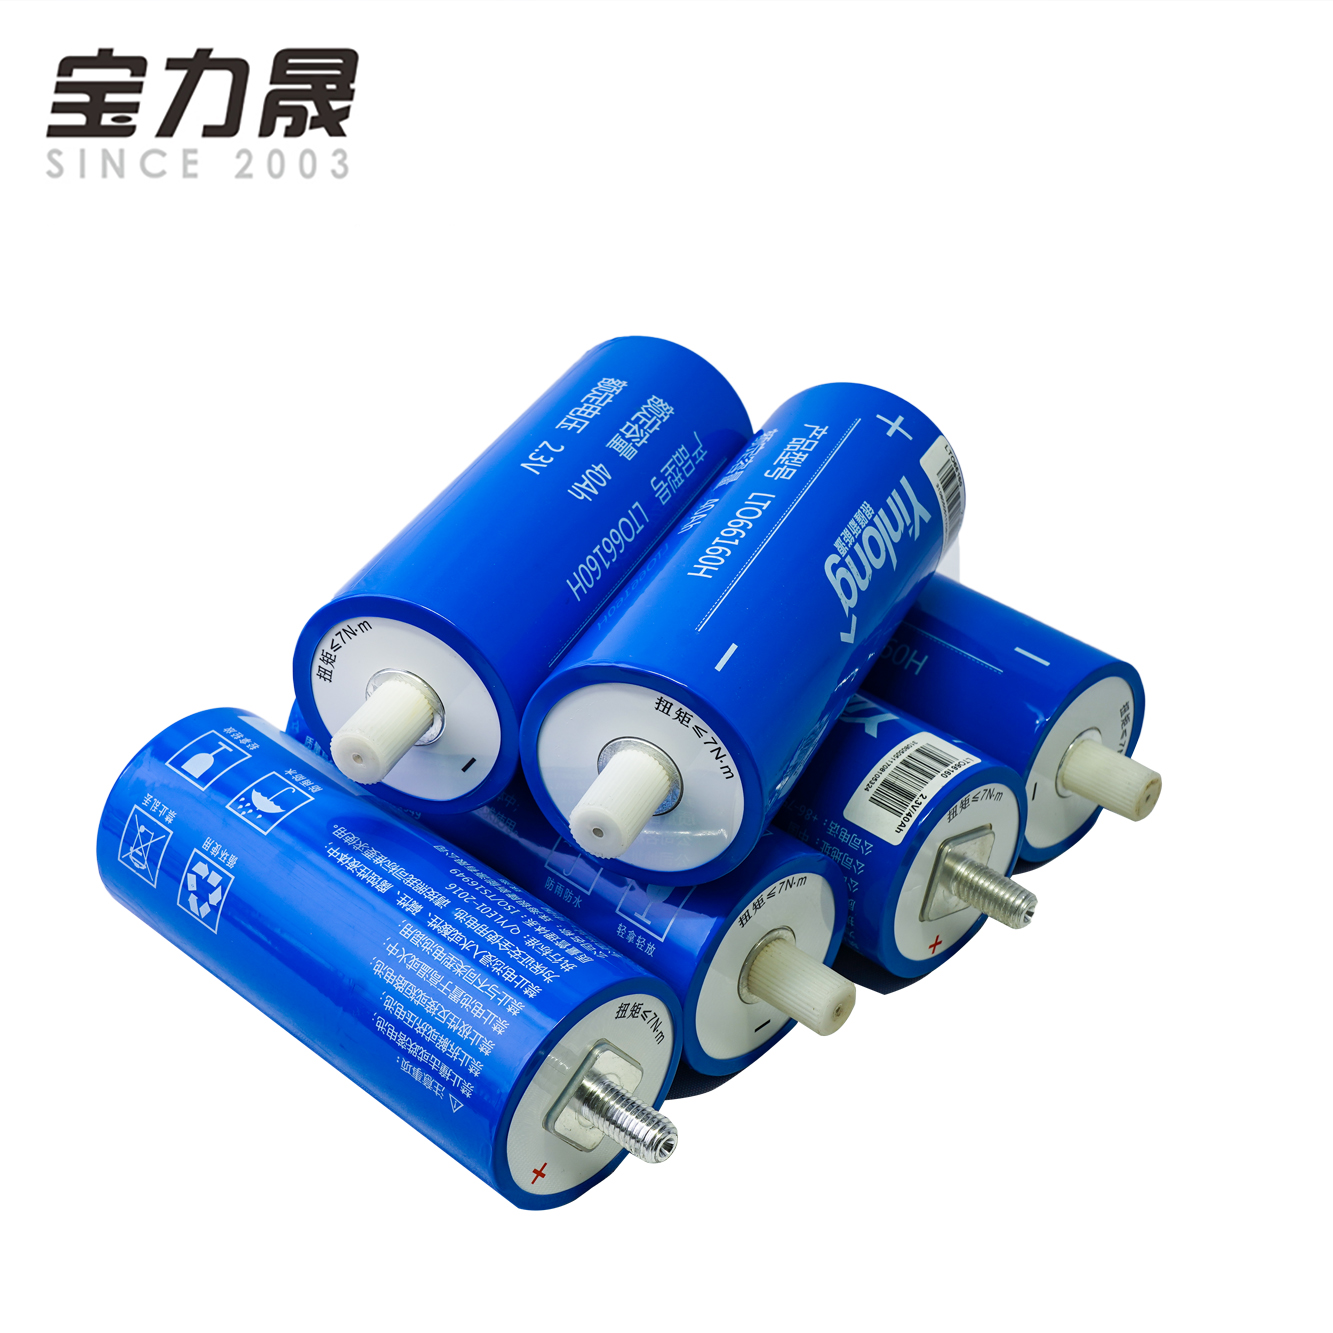 10pcs 2.3V 40AH with 10S 24V 100A BMS YINLONG LTO <font><b>66160</b></font> Lithium Titanate Battery Cell 2.4v 10C 400A for 12v 14.4v EV golf cart image